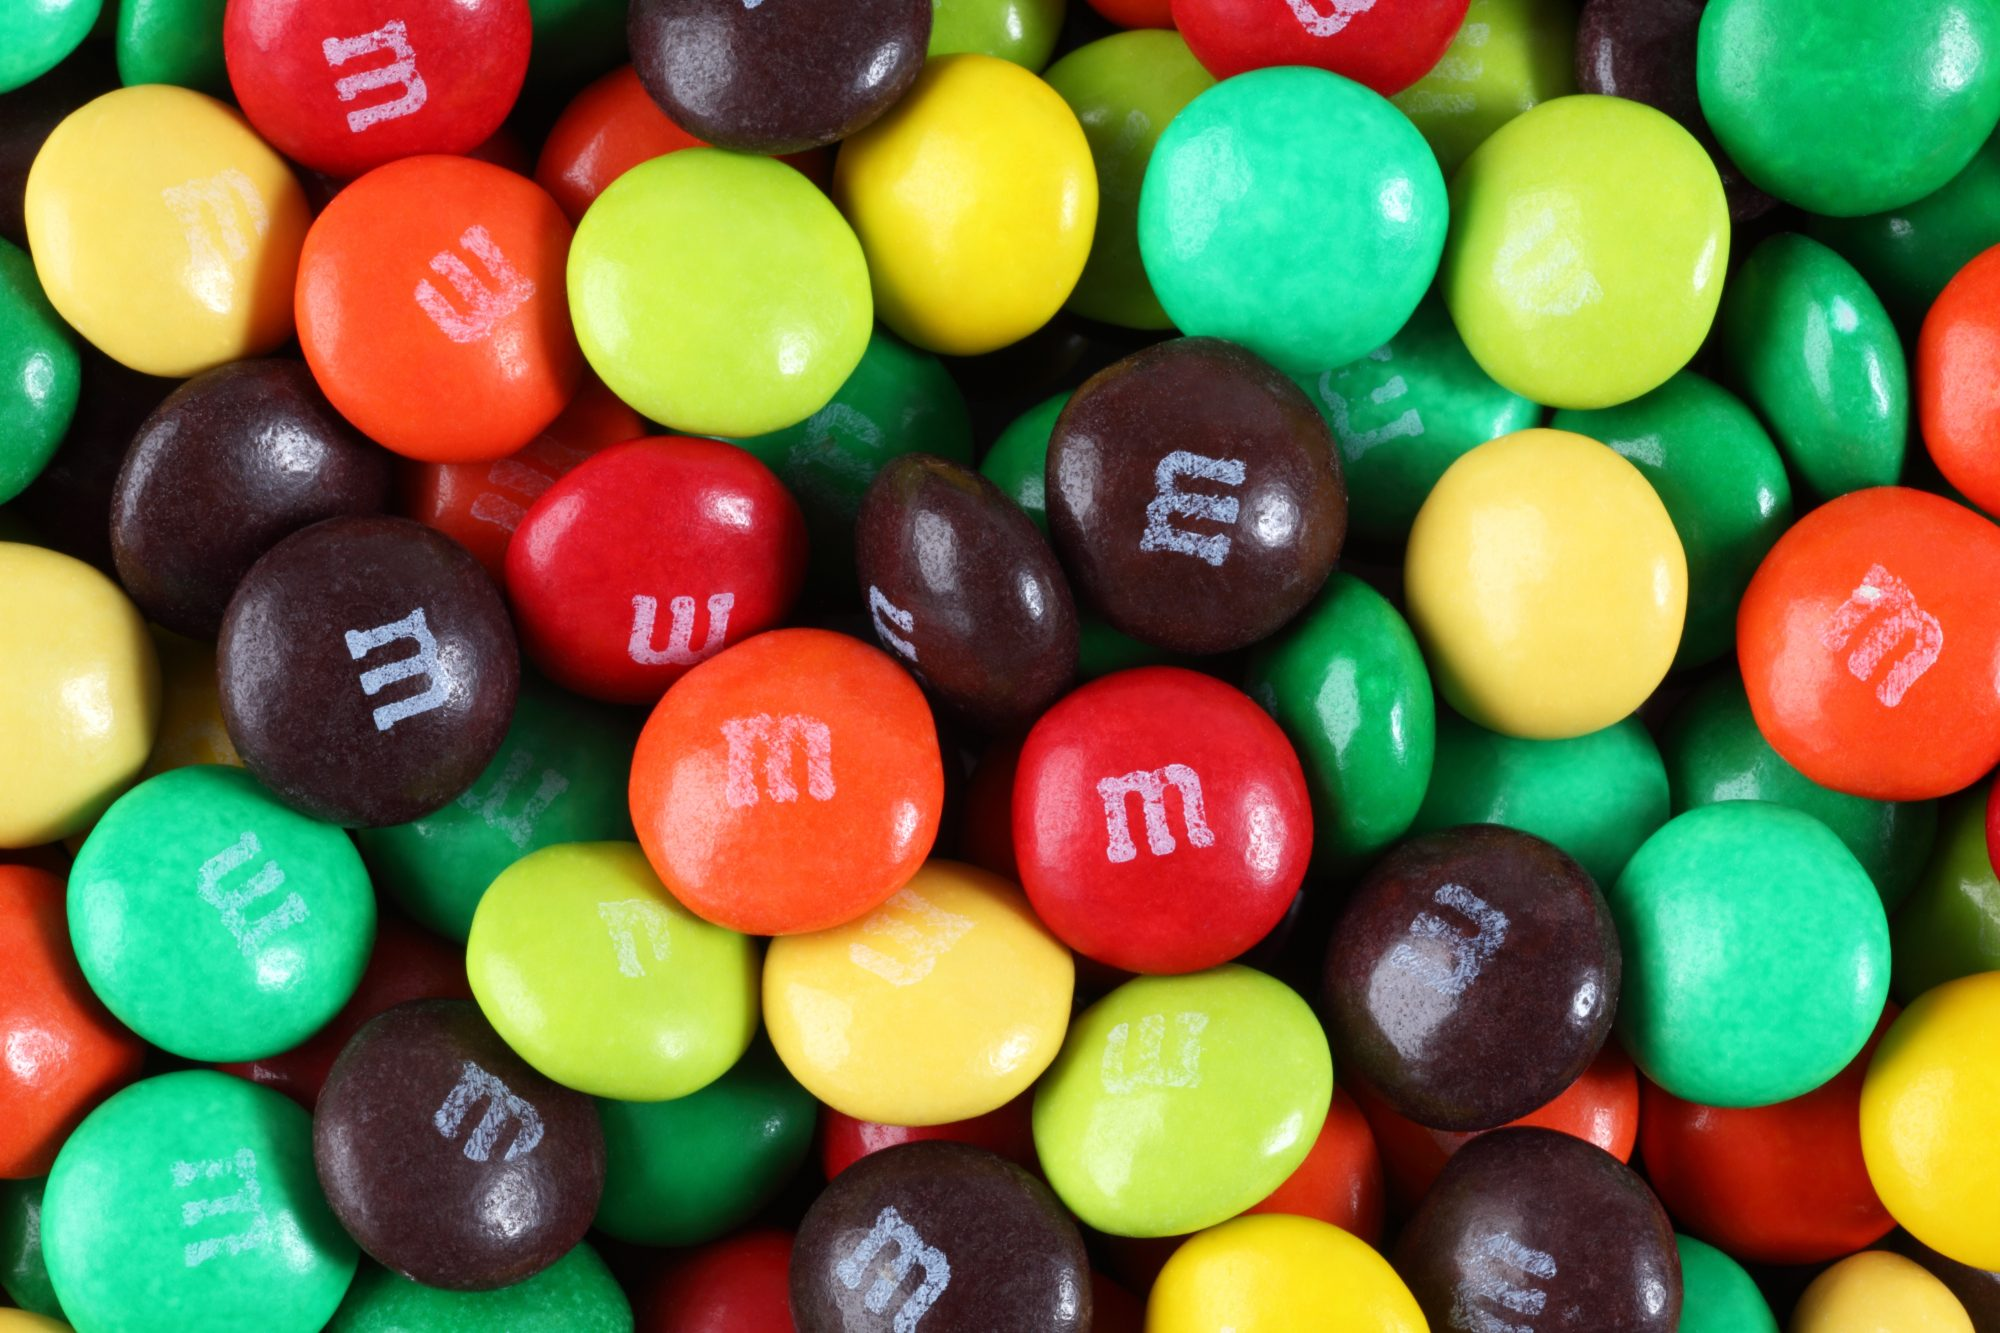 M&M's Newest Flavor Will Only Be Available at One Store